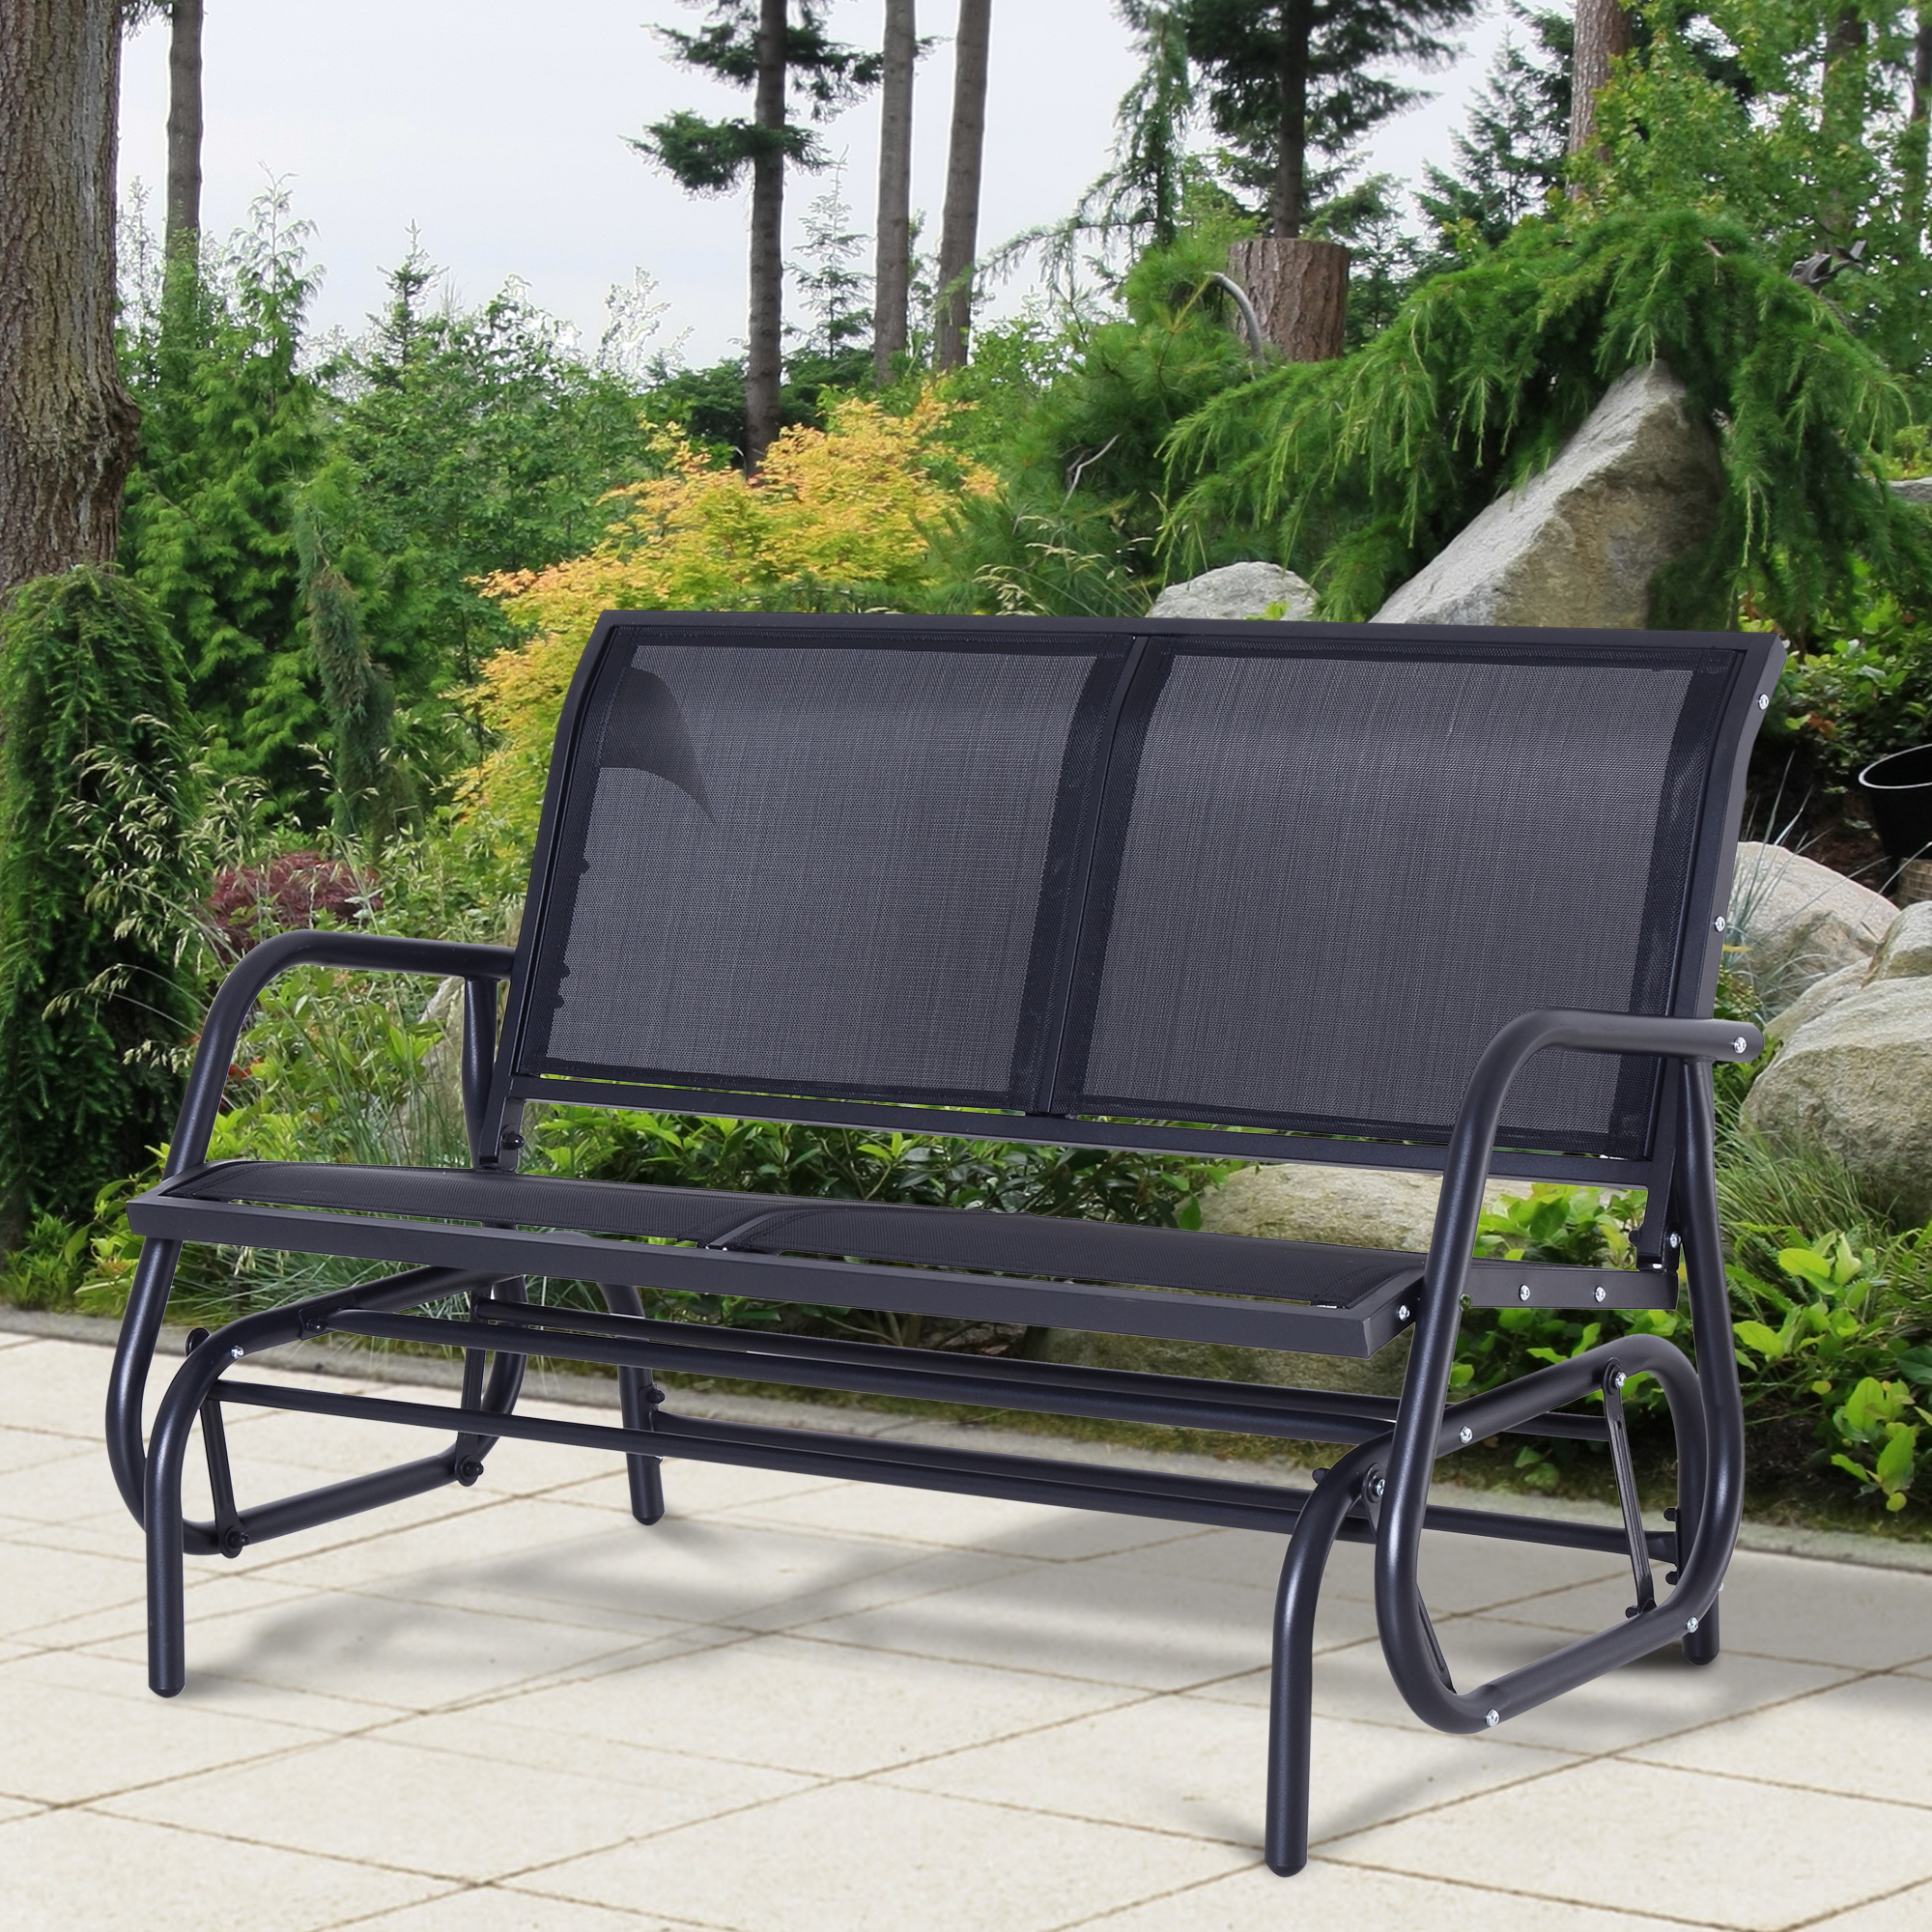 Details About Outsunny Patio Garden Glider Bench 2 Person Double Swing Chair Rocker Deck Black With Fashionable Steel Patio Swing Glider Benches (Gallery 3 of 25)